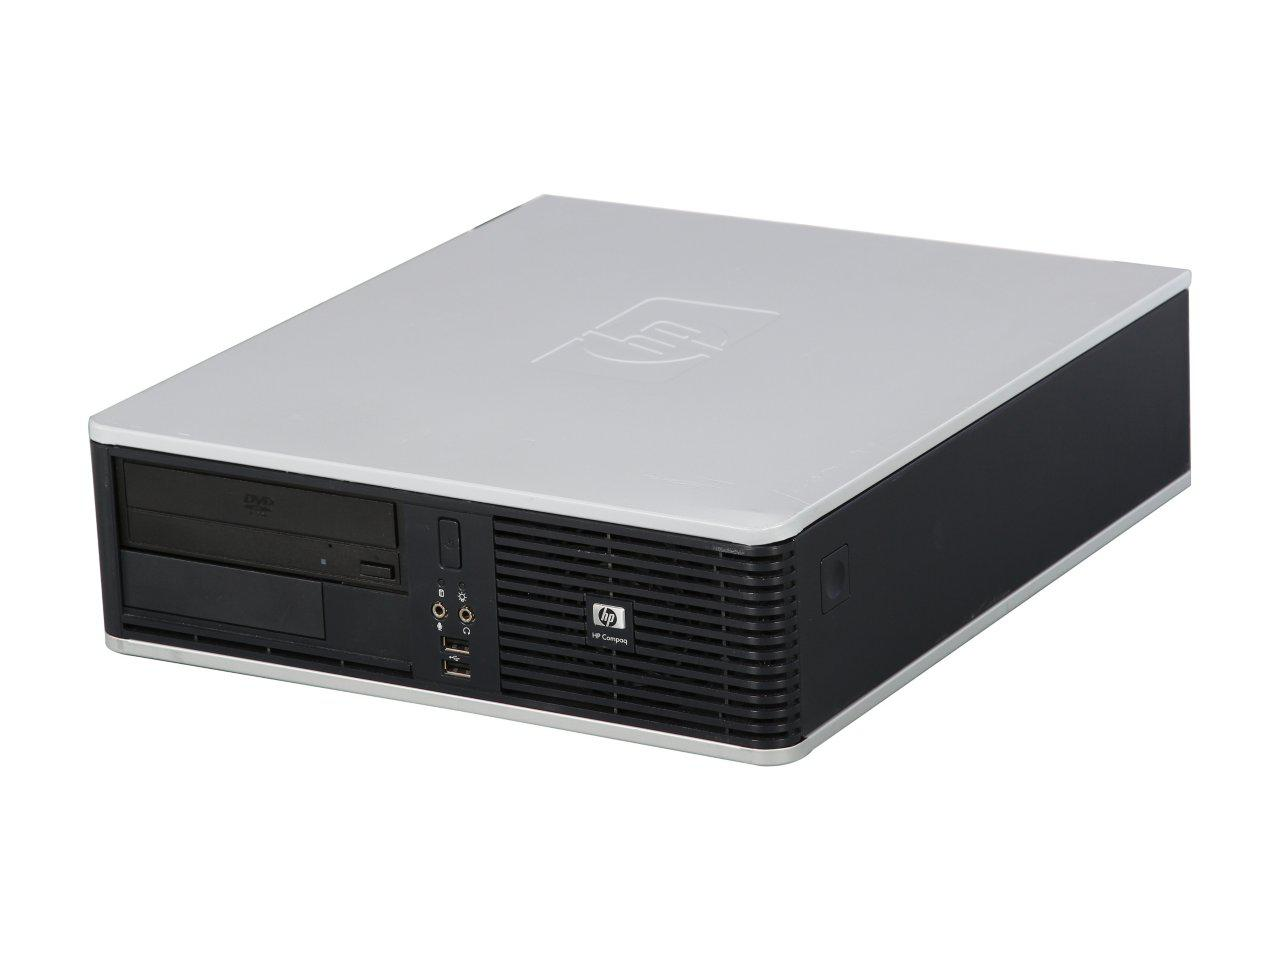 DC5800 SFF DRIVERS FOR WINDOWS 7